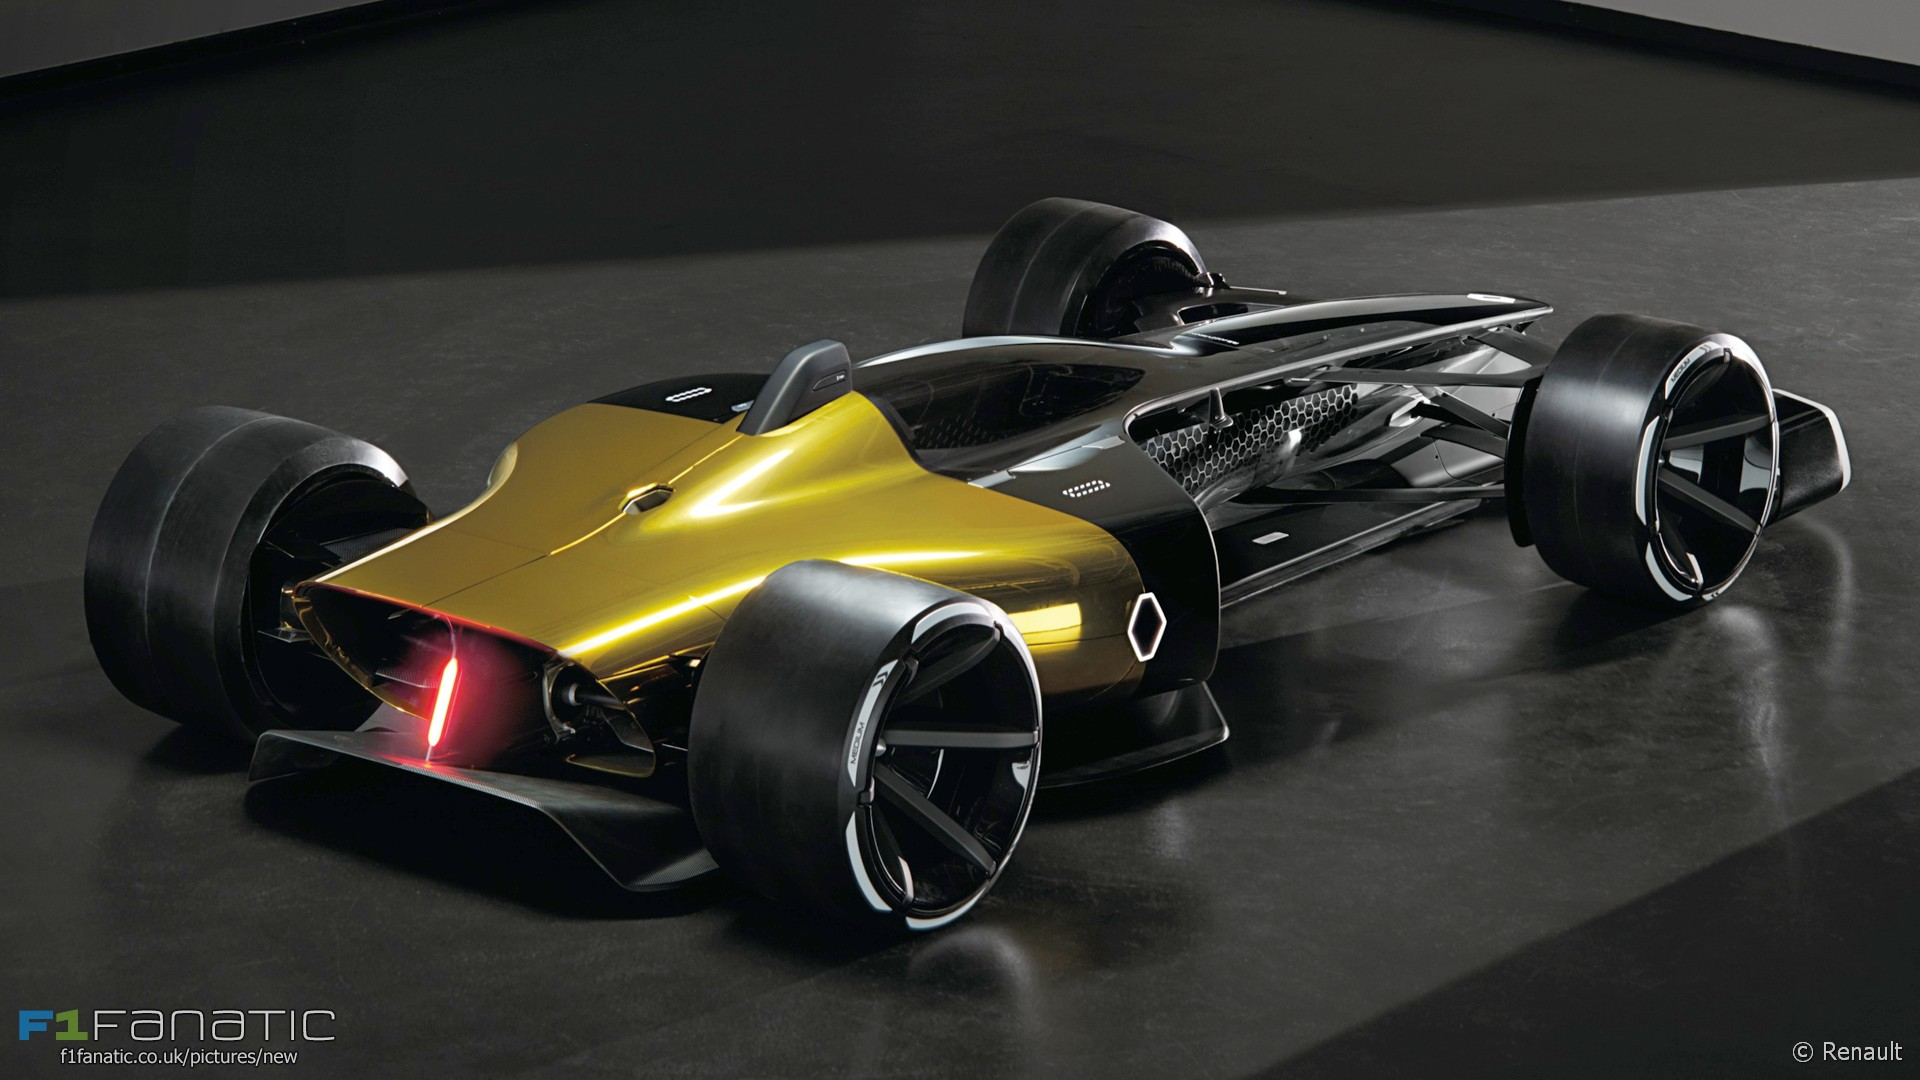 Renault Rs 2027 Vision F1 Car Concept 183 F1 Fanatic